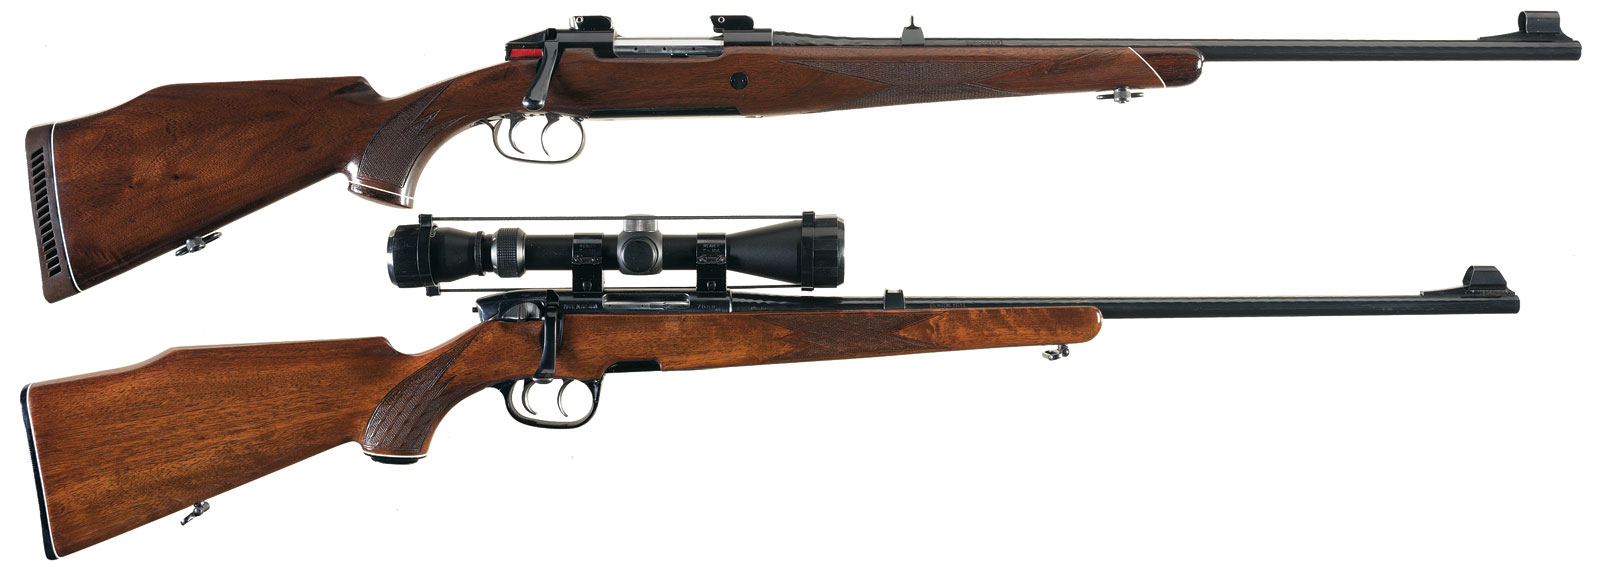 Top rifle is a The Mannlicher Schönauer M72, lower rifle is a Steyr-Mannlicher of the seventies with its plastic fittings. The The Mannlicher Schönauer M72 as you can see is a graceful blending of blued steel and walnut: the Steyr Mannlicher is a blend of blued steel, walnut and plastic that becomes one of the ugliest sporting rifles in existence.